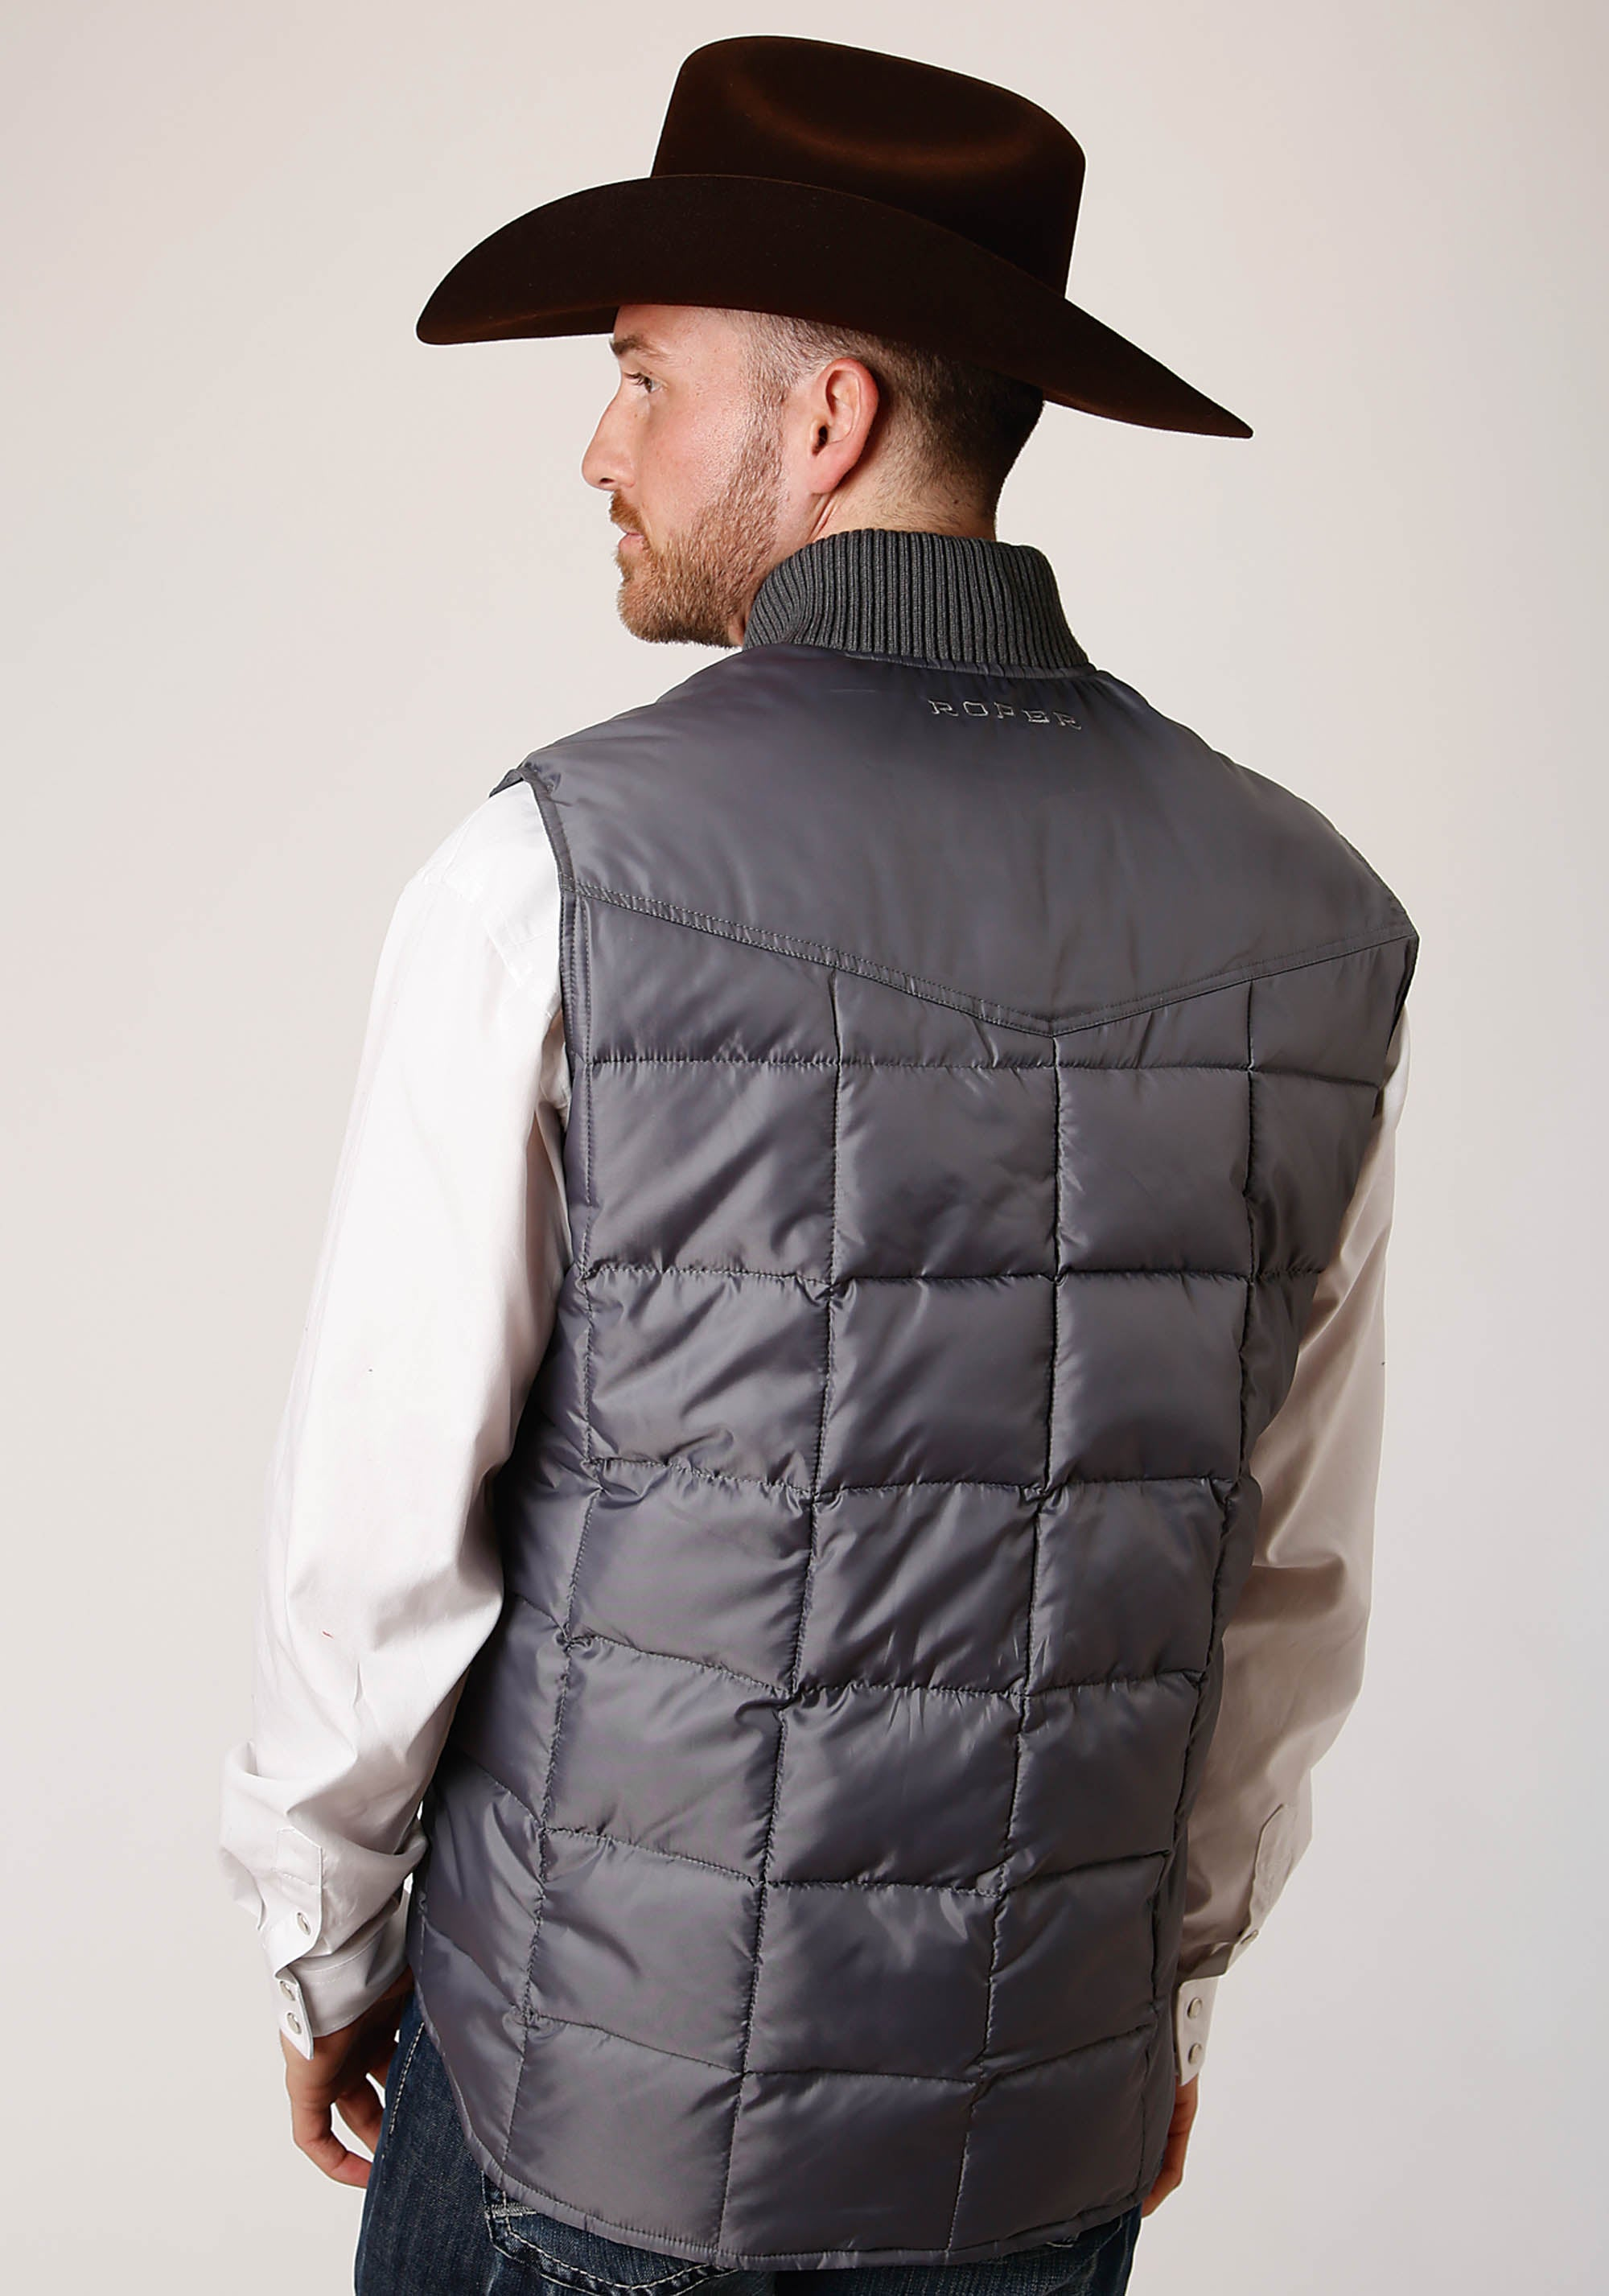 OUTERWEAR MENS GREY 1473 MEN'S QUILTED POLY FILLED VEST OPENING PRICE POINT